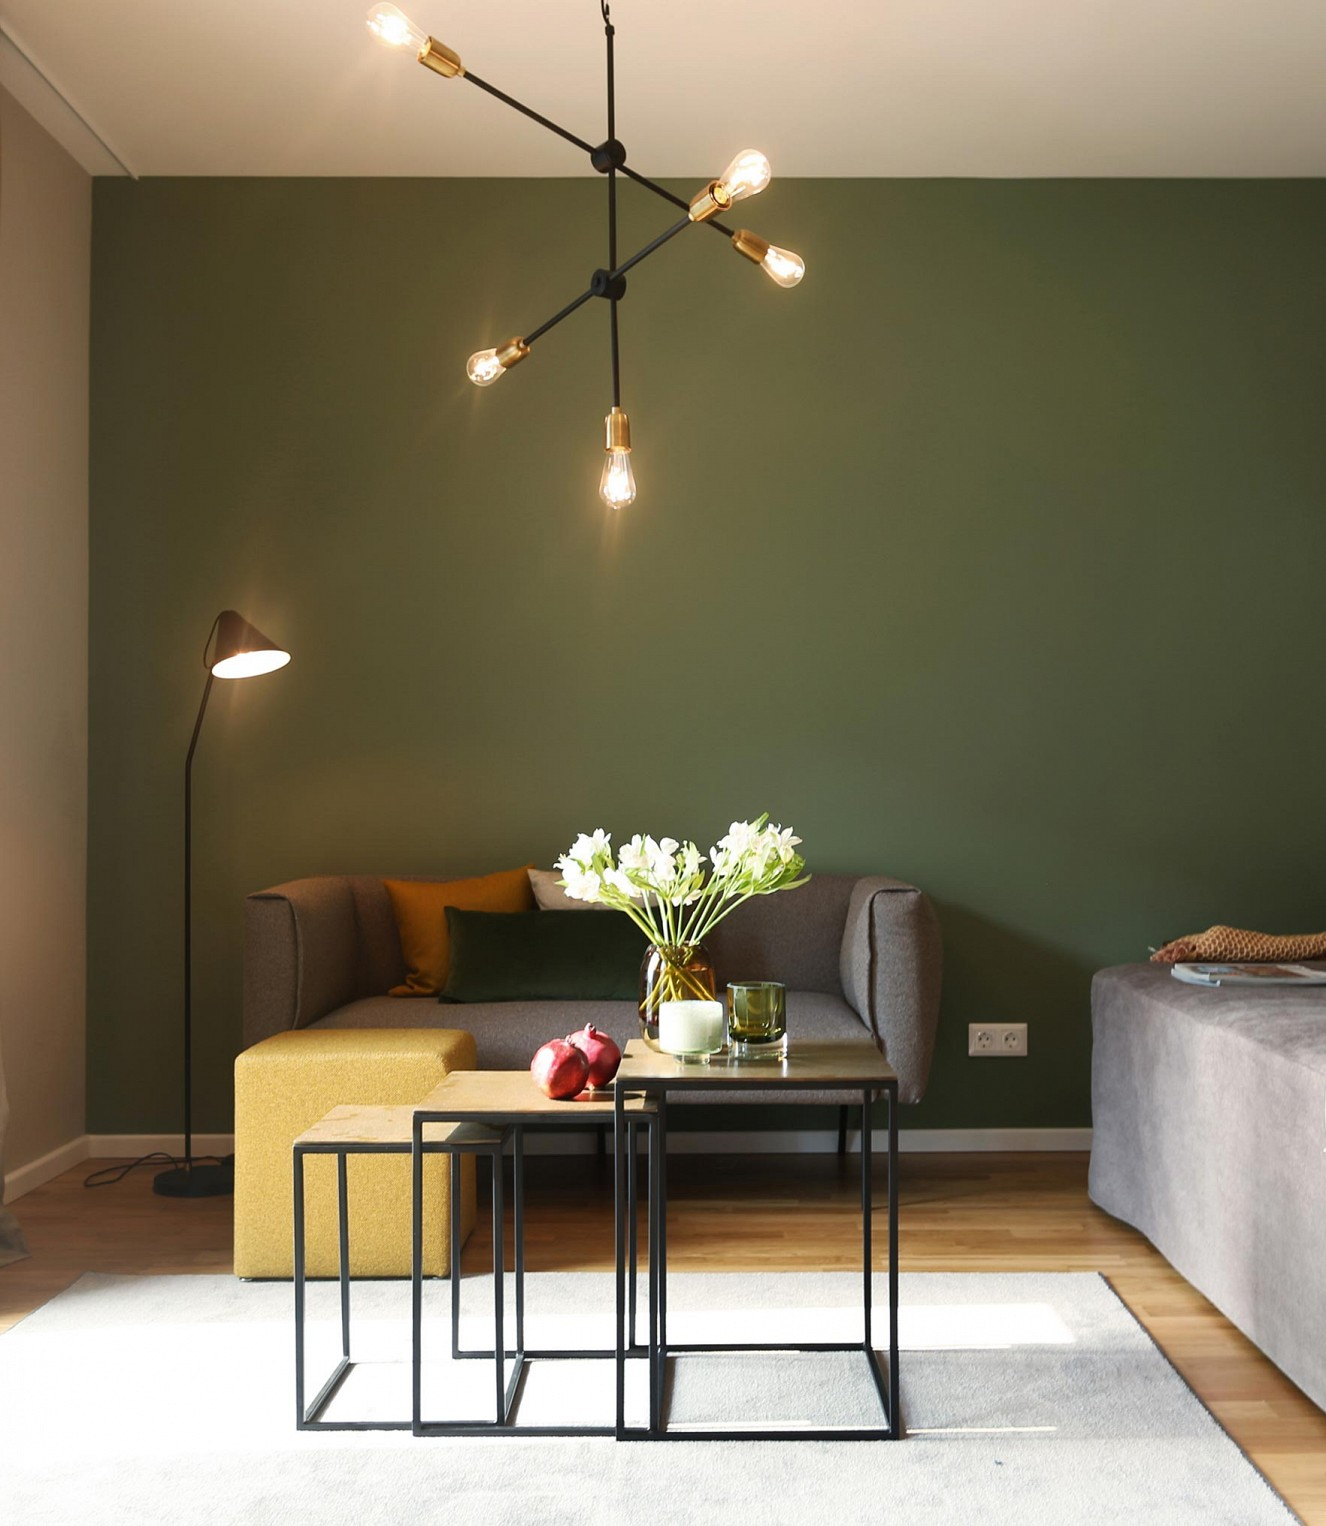 brillant interiors Interior Designer Berlin Mitte … to completion